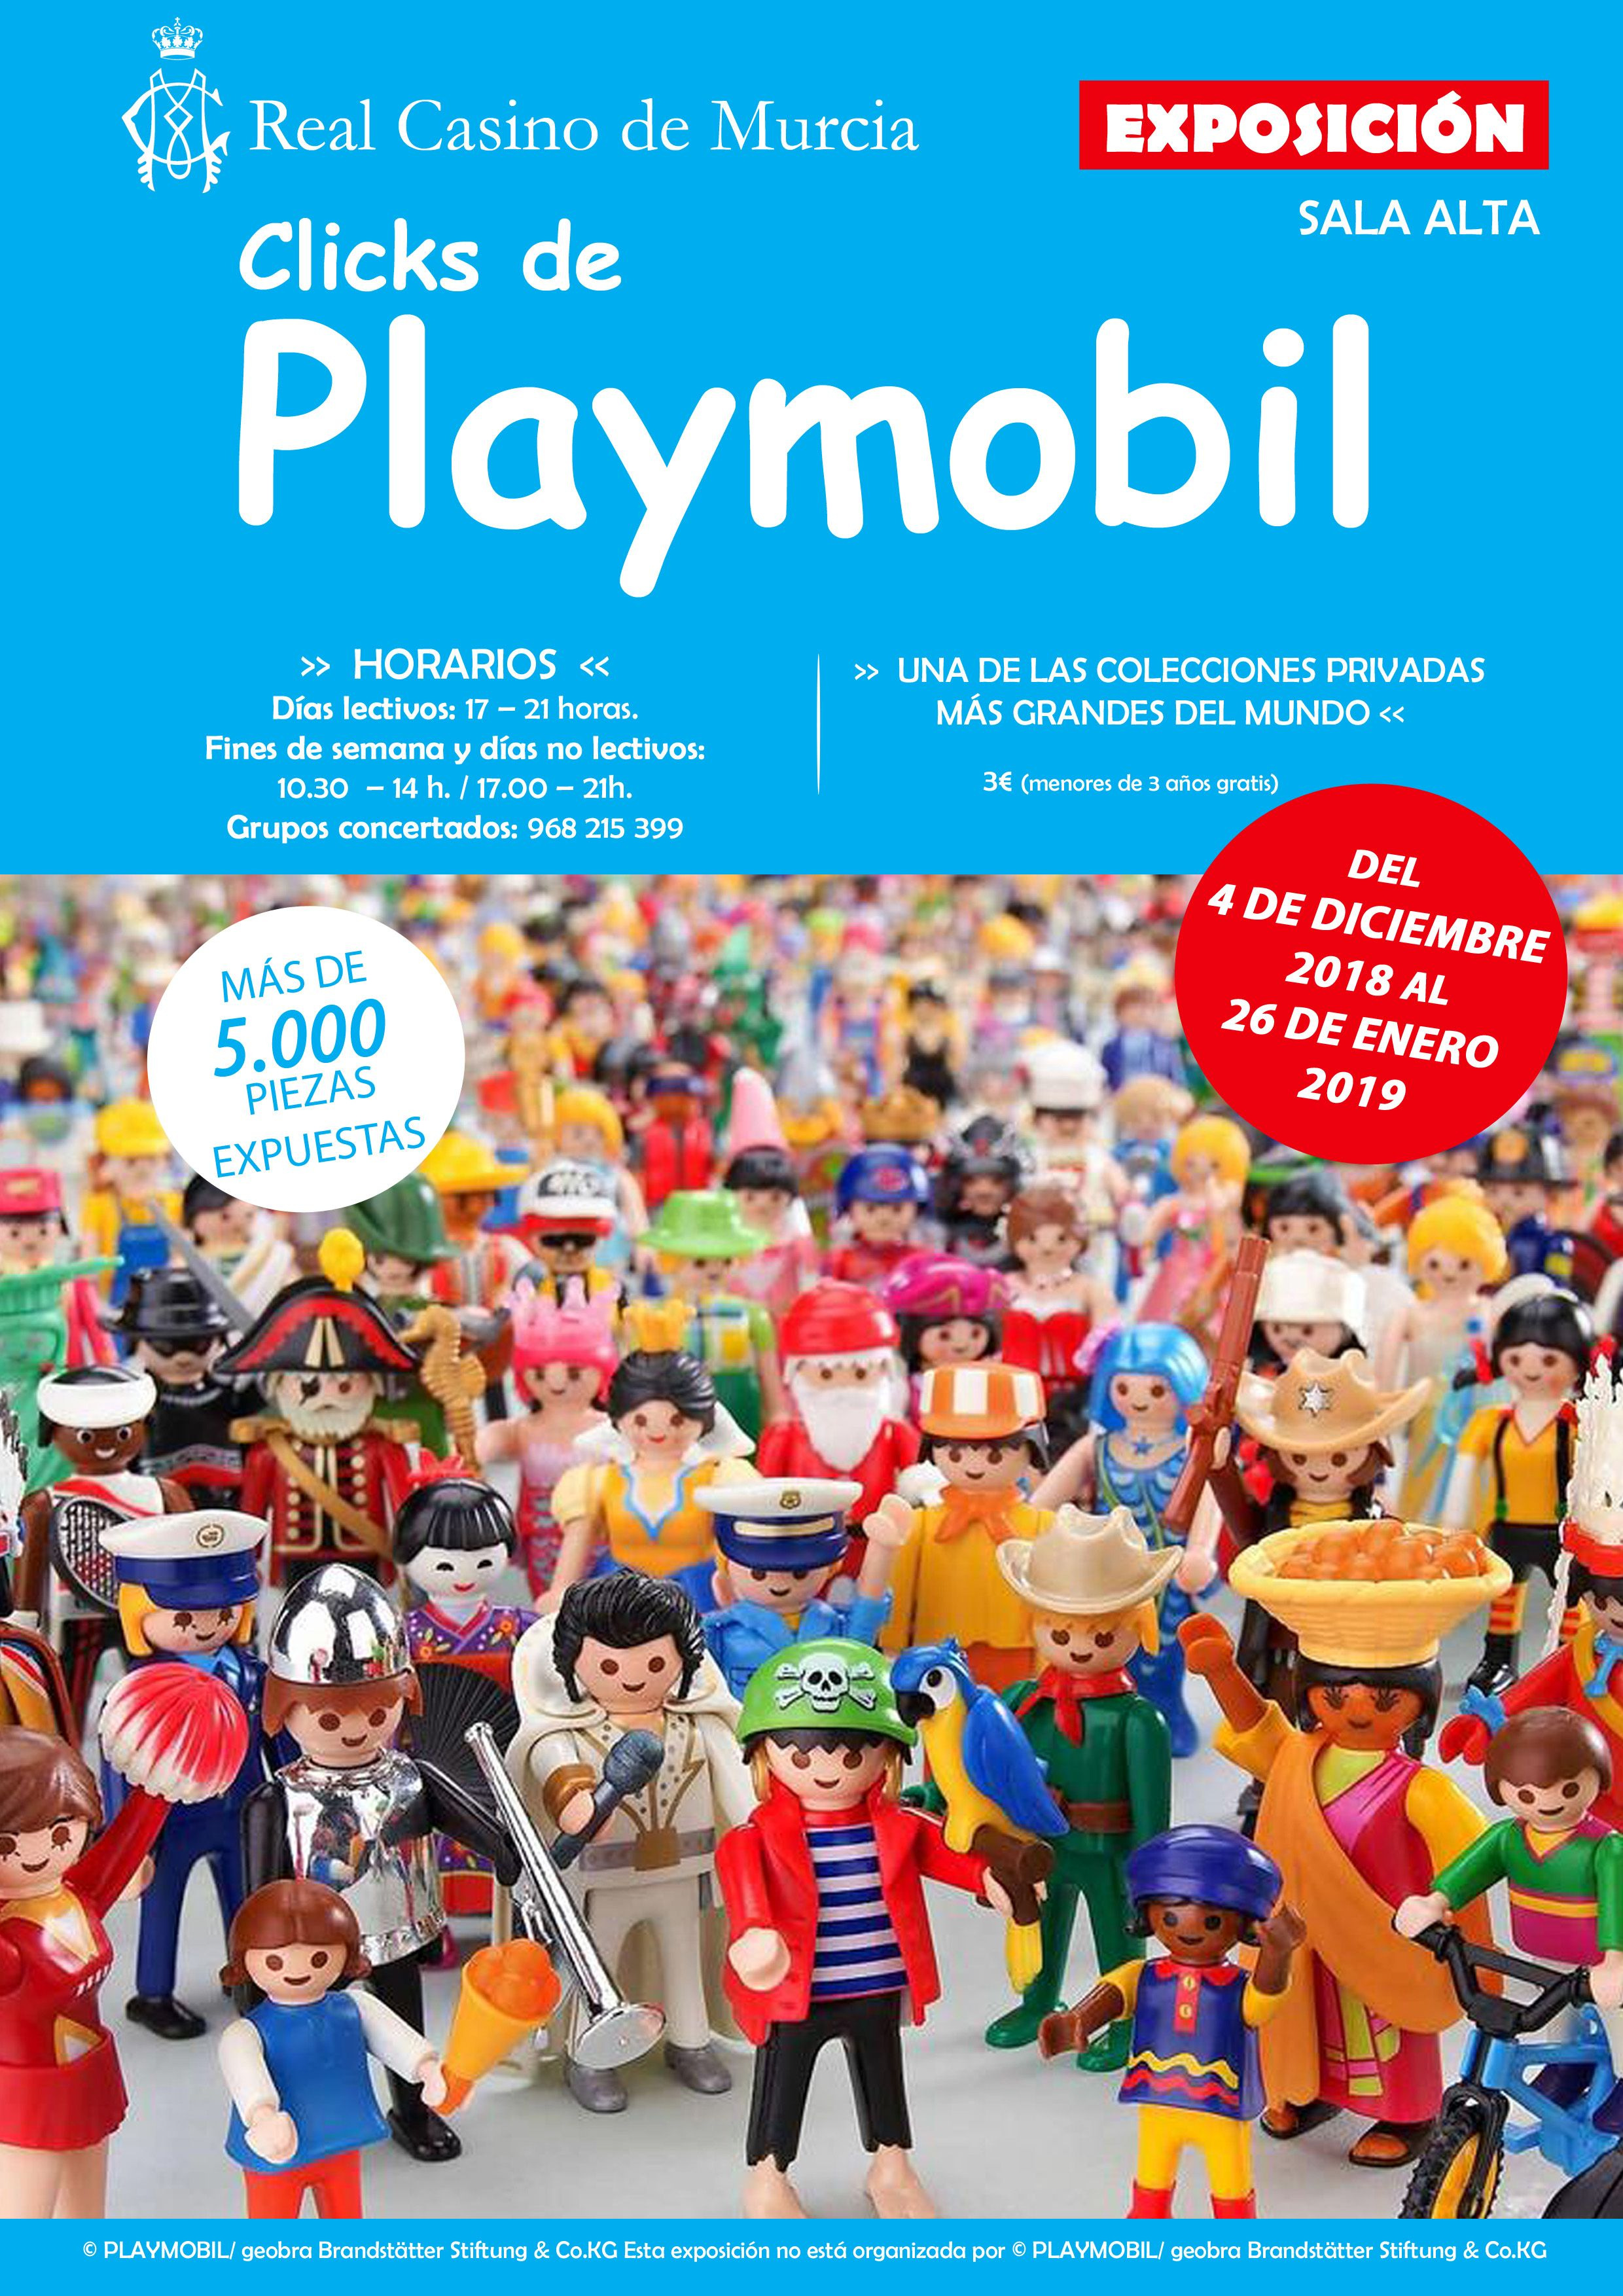 EXPO PLAYMOBIL 2019